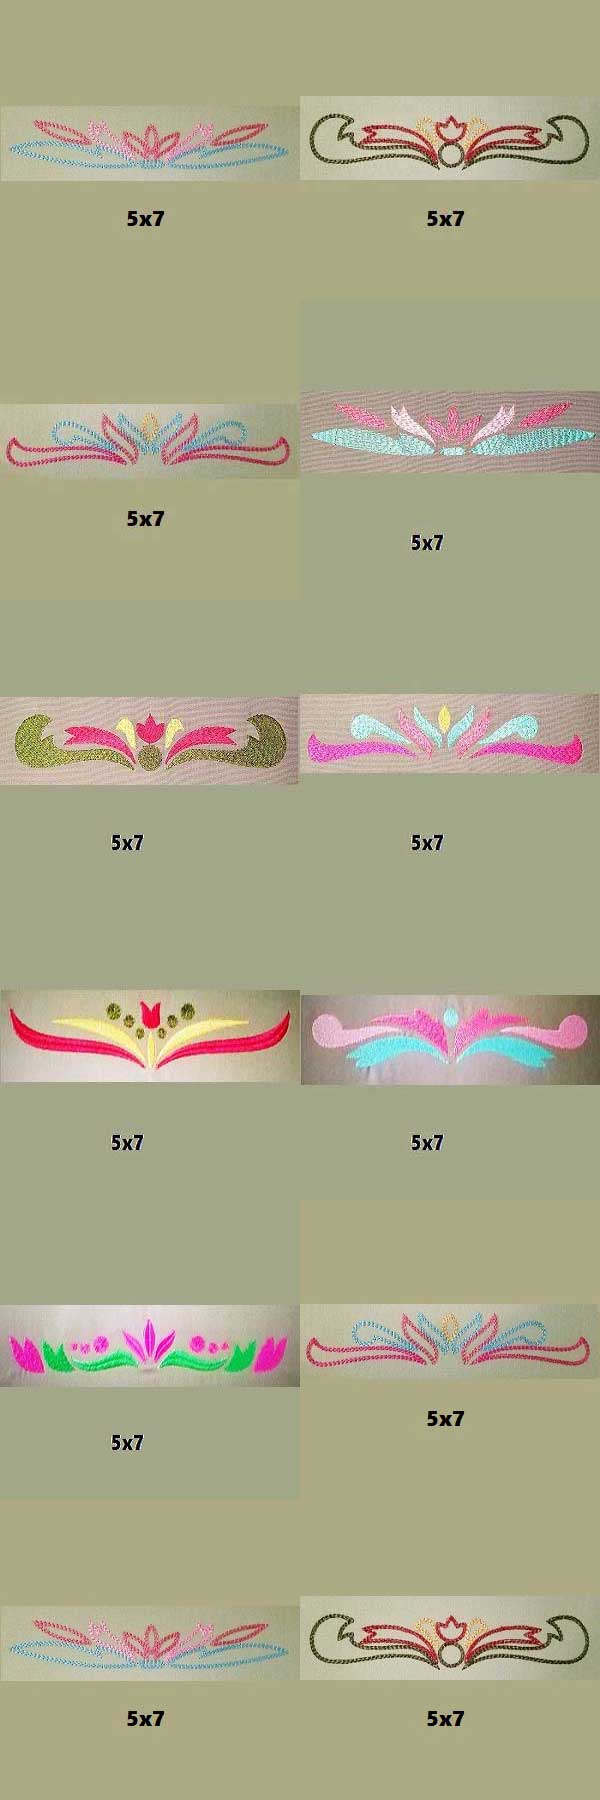 Damask Borders Embroidery Machine Design Details